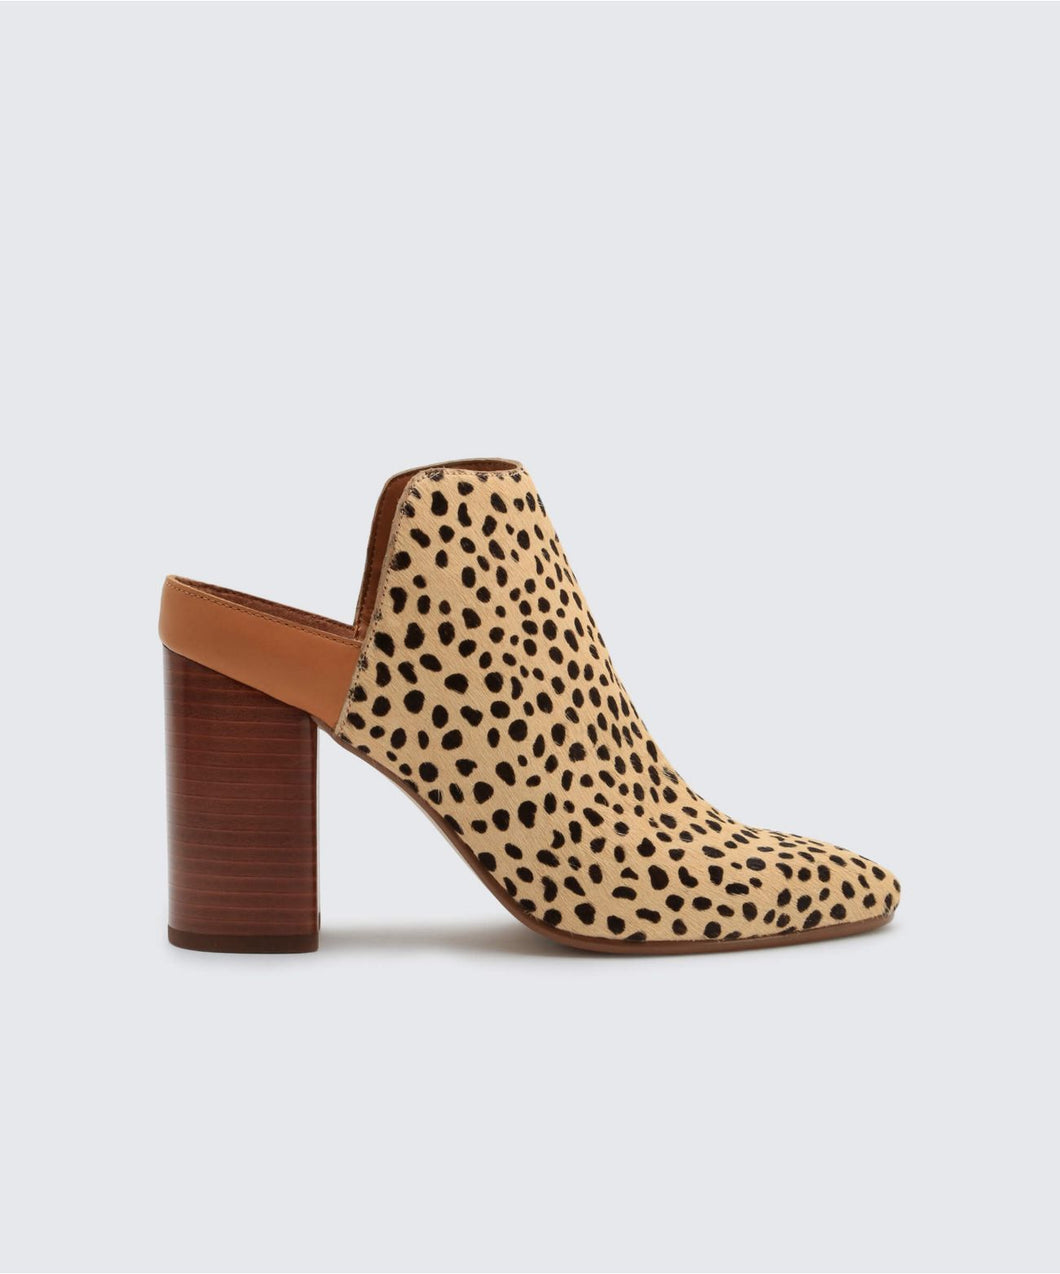 RENLY BOOTIES LEOPARD -   Dolce Vita